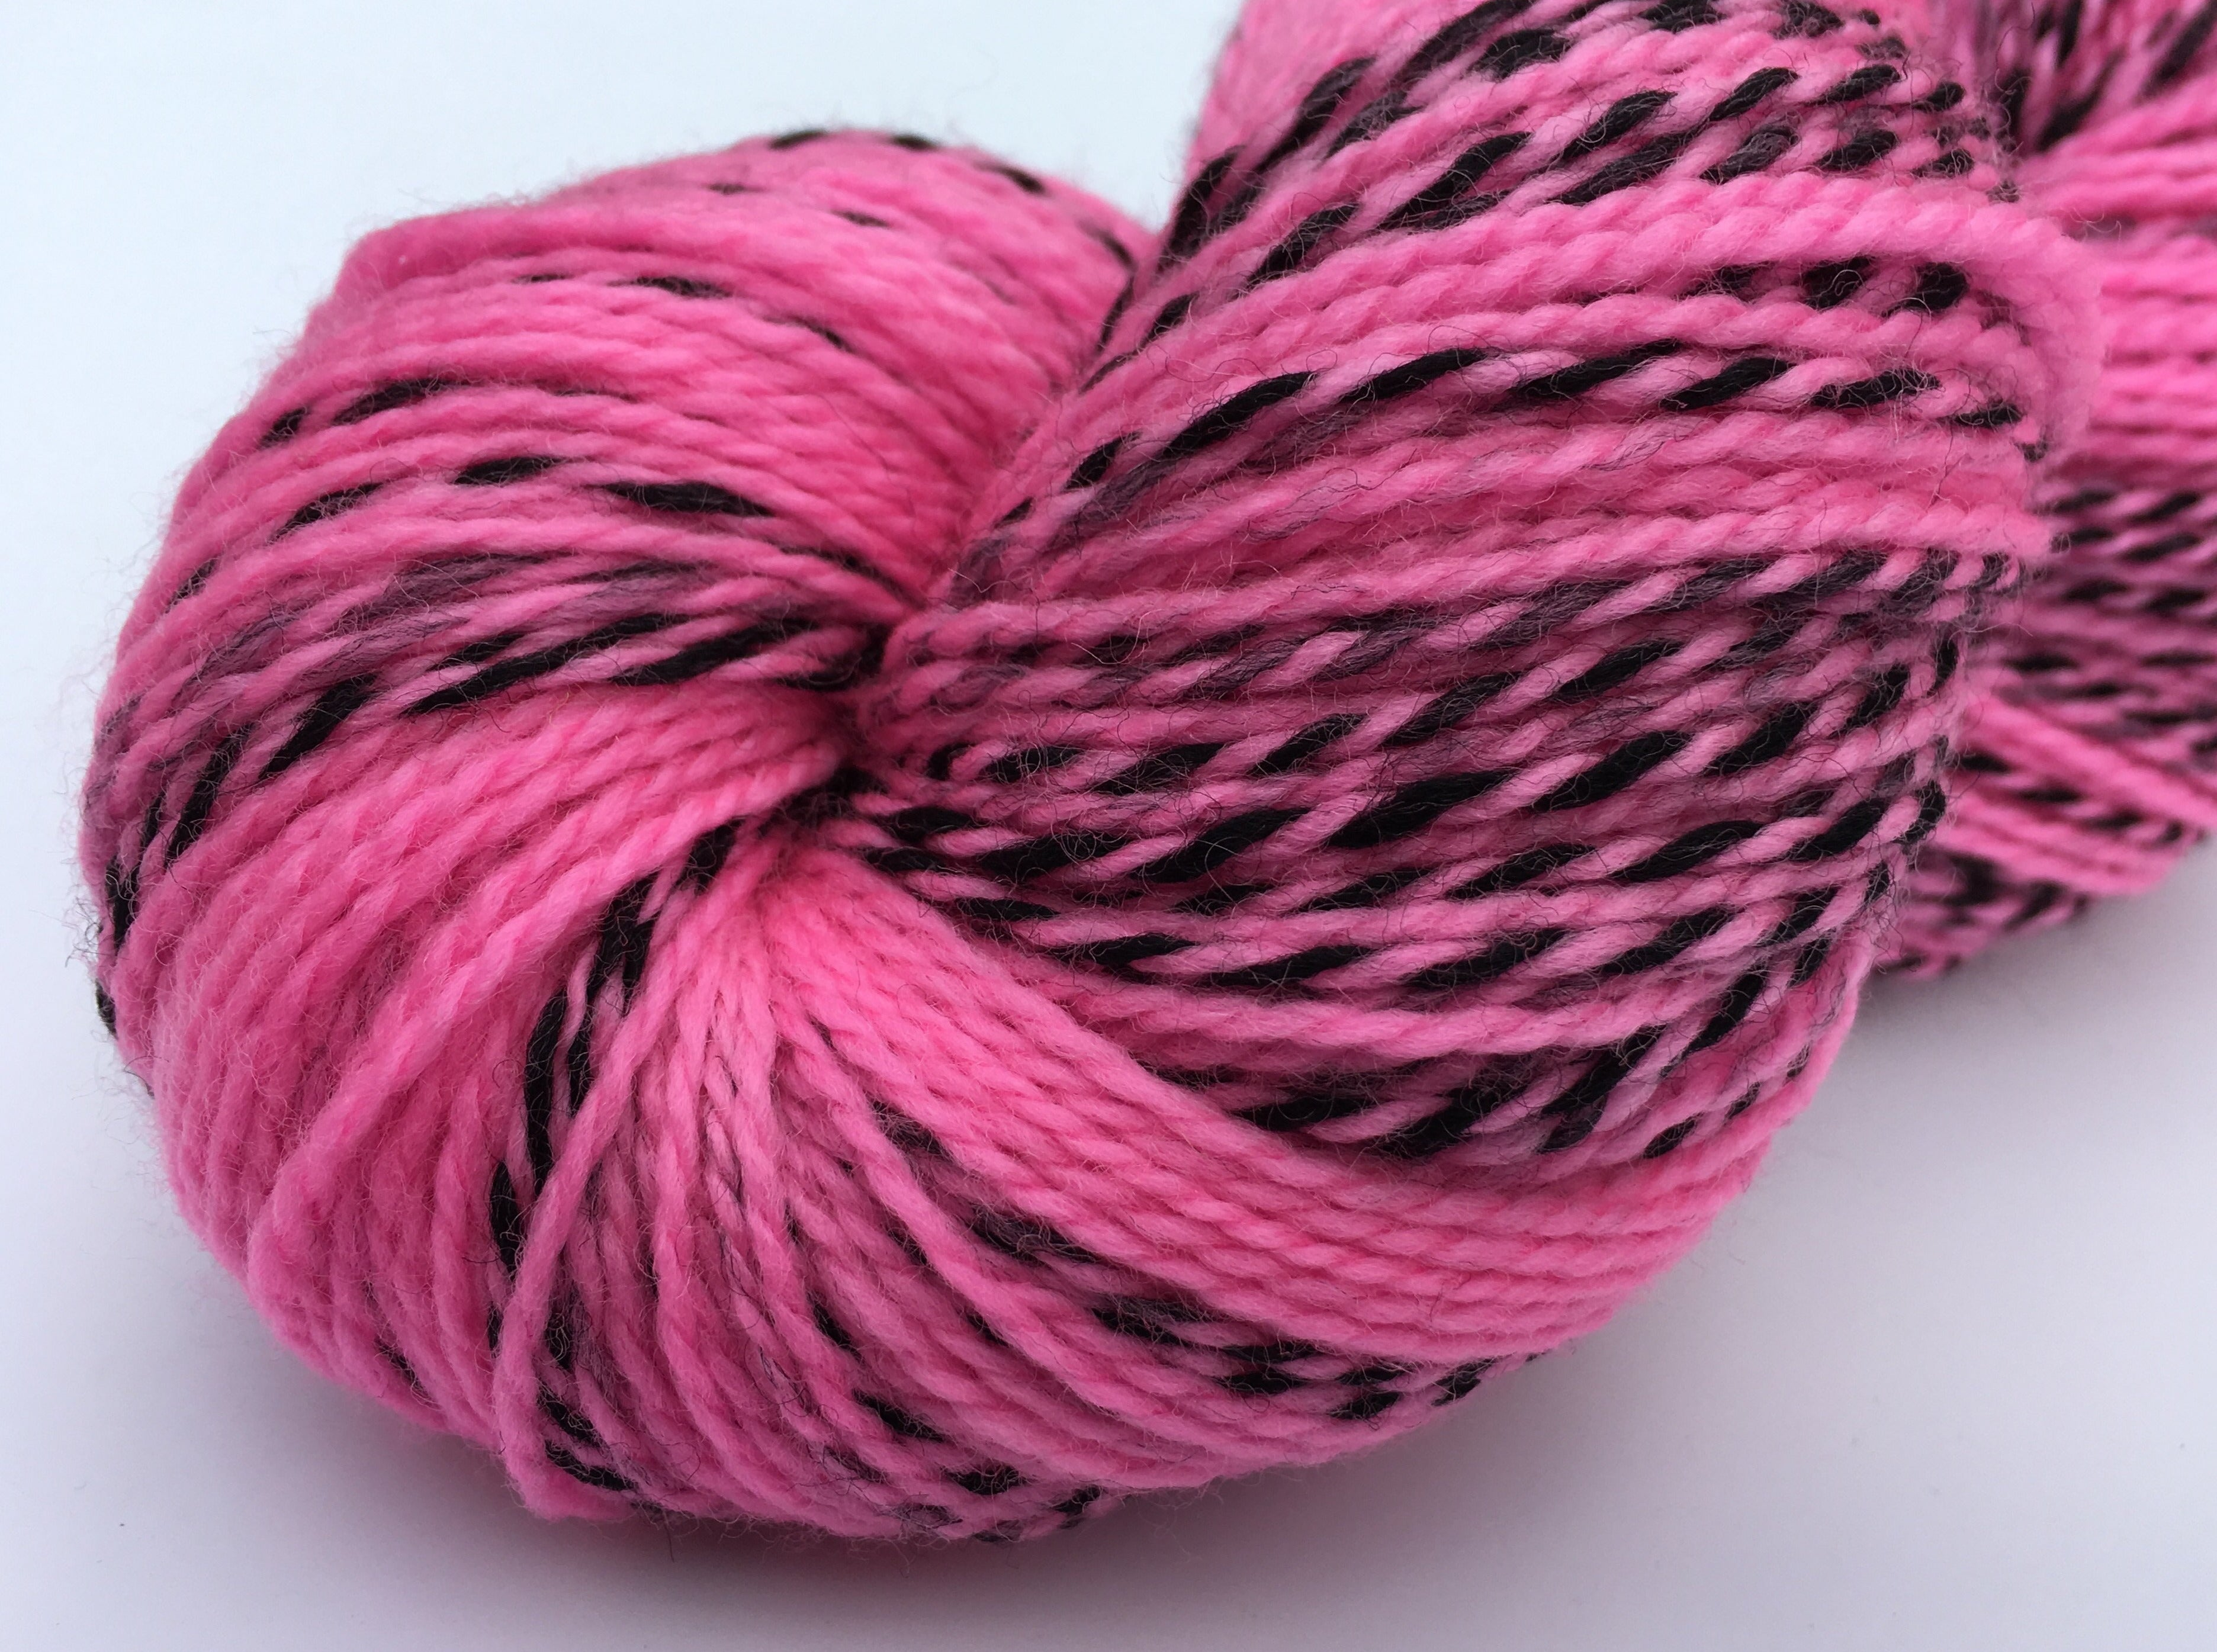 uv reactive neon cotton candy pink sock yarn with a black zebra stripe